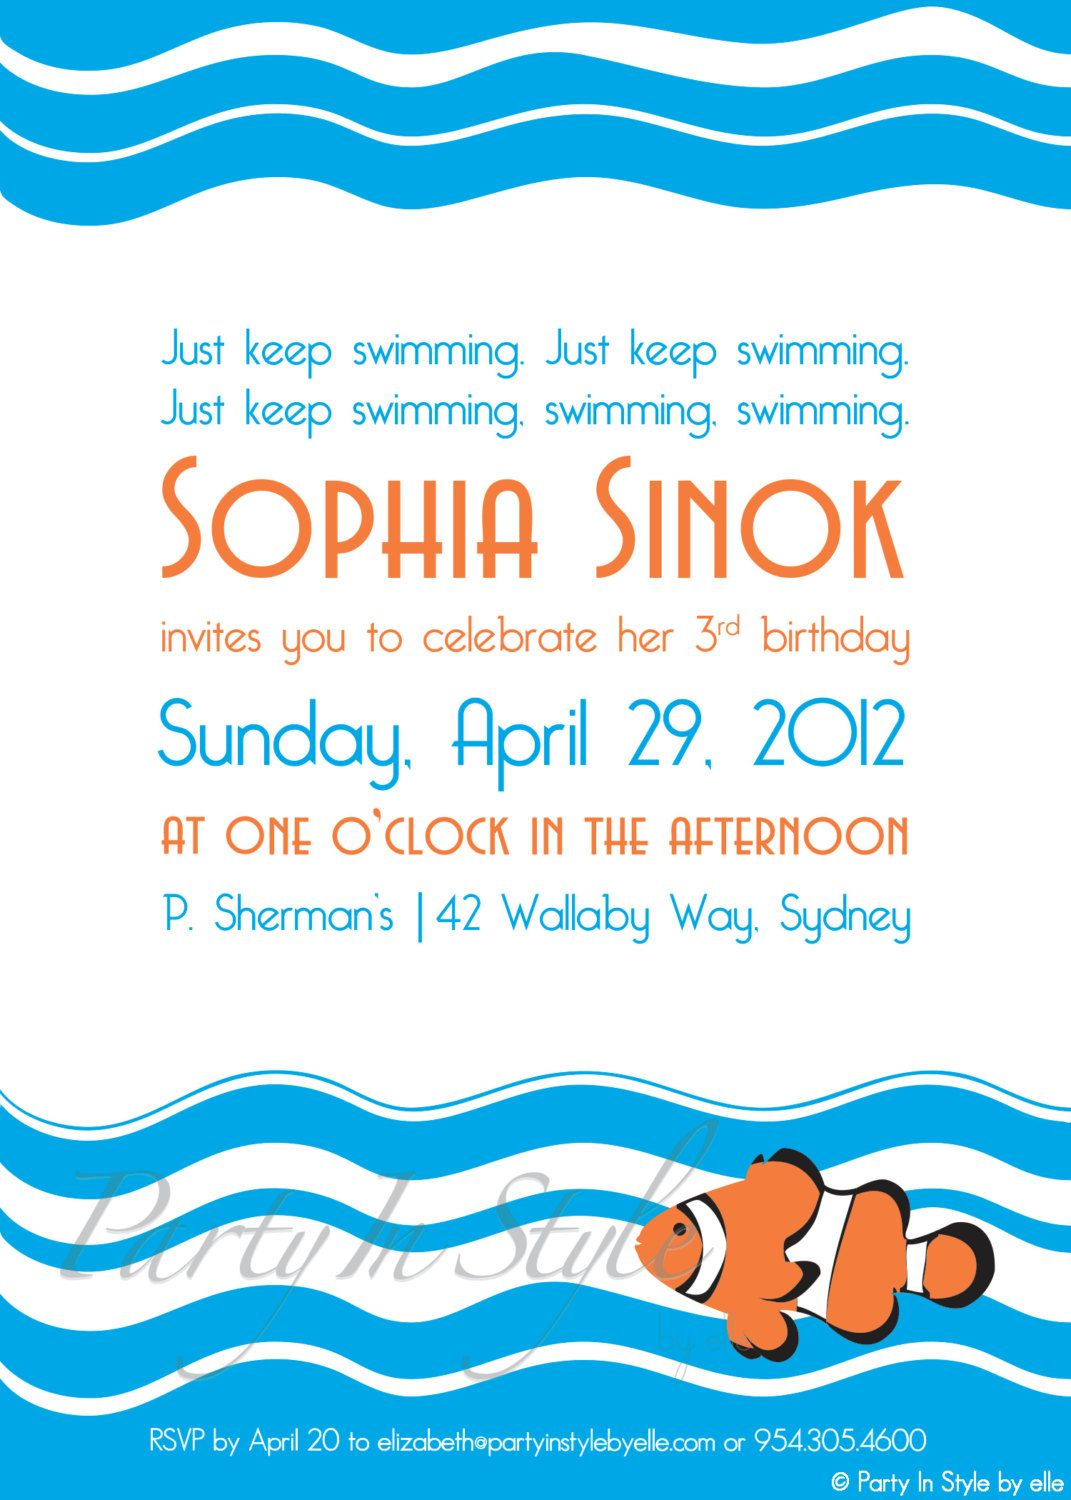 Cute Finding Nemo/Ocean Inspired Party invitation   Aaron bday ideas ...